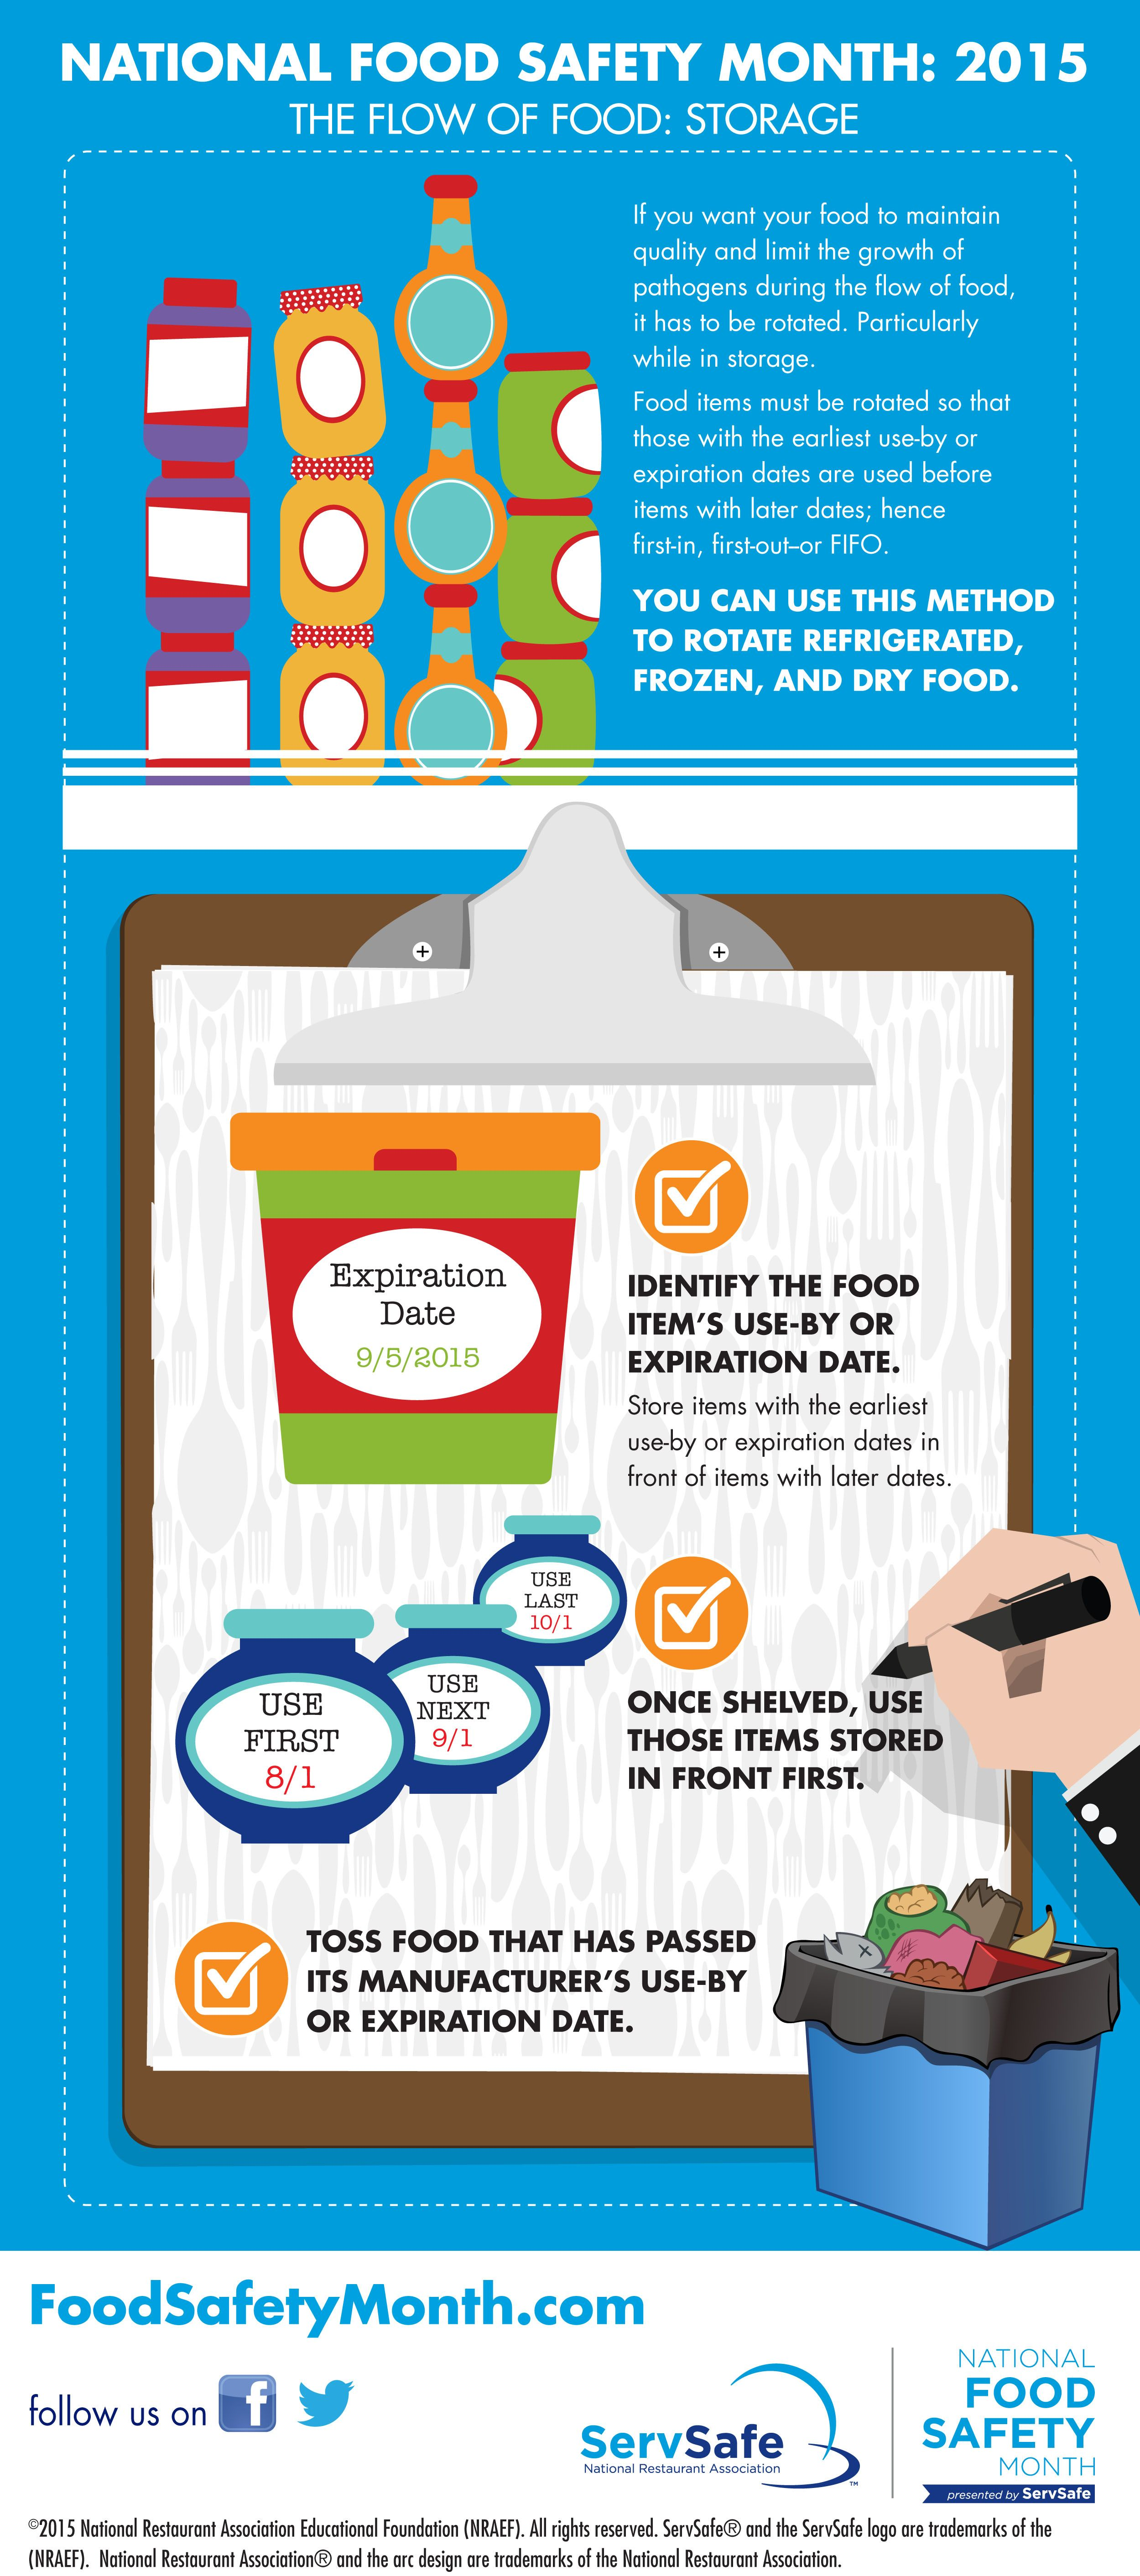 National Food Safety Month Infographic About Food